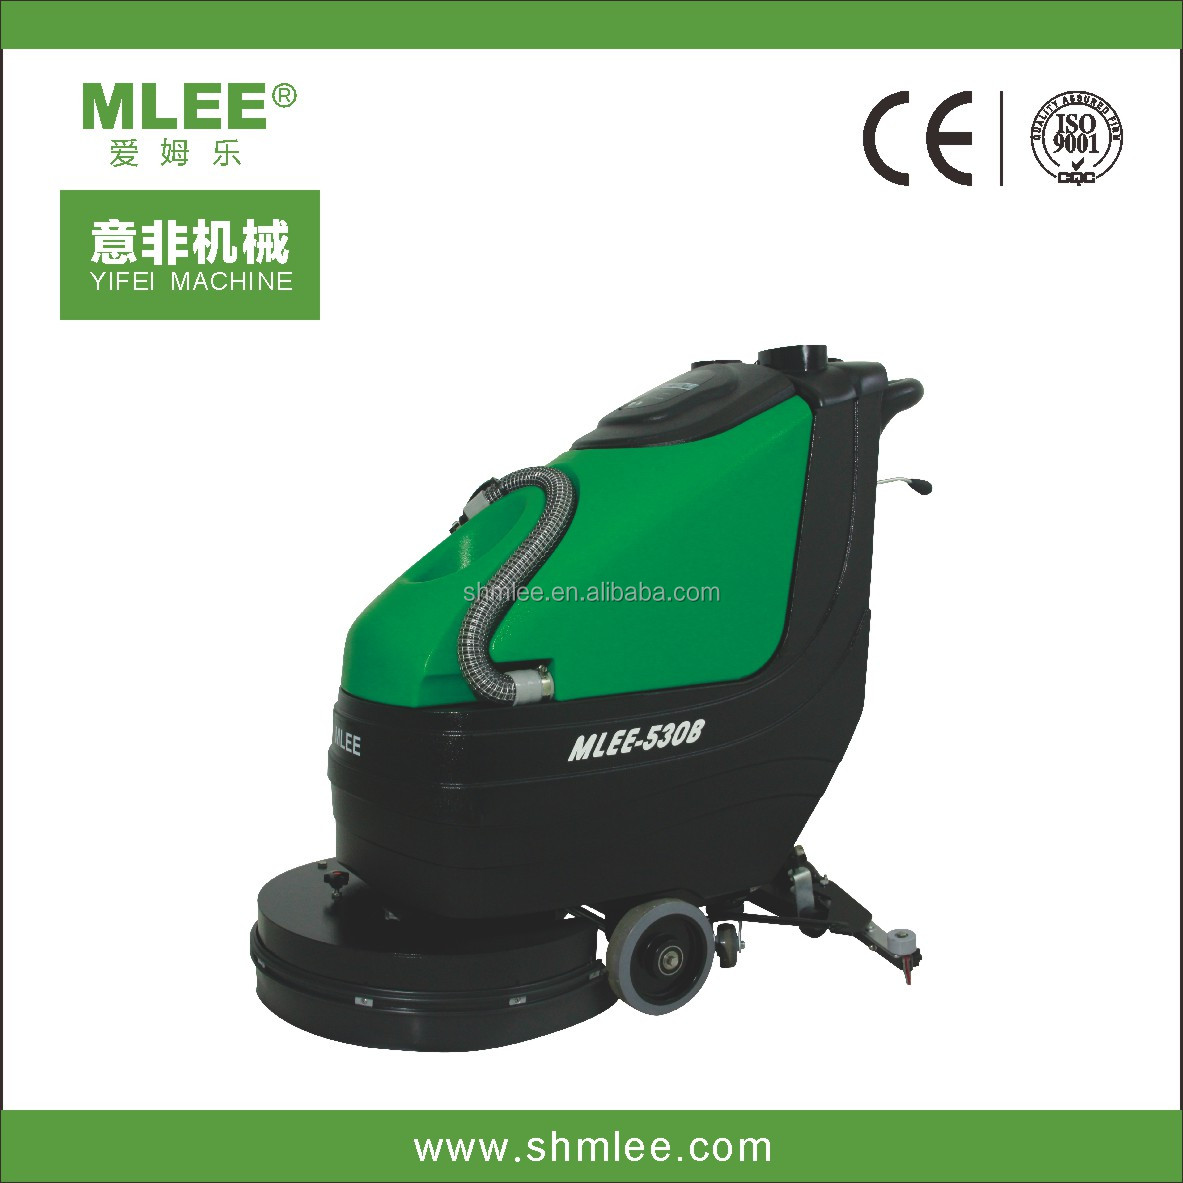 MLEE530B for hospital cleaning broom